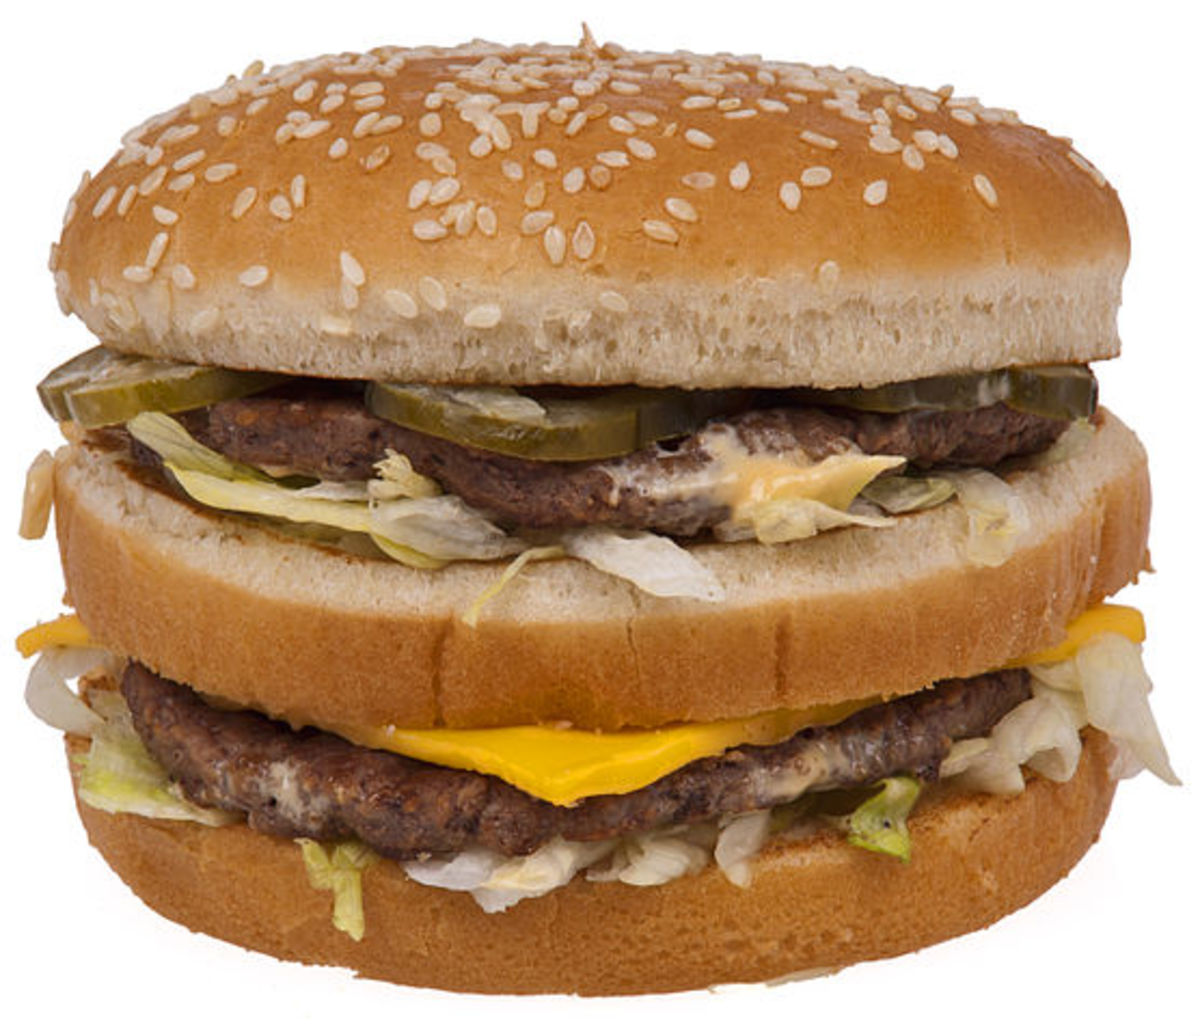 Big Mac weighs in at 550 calories